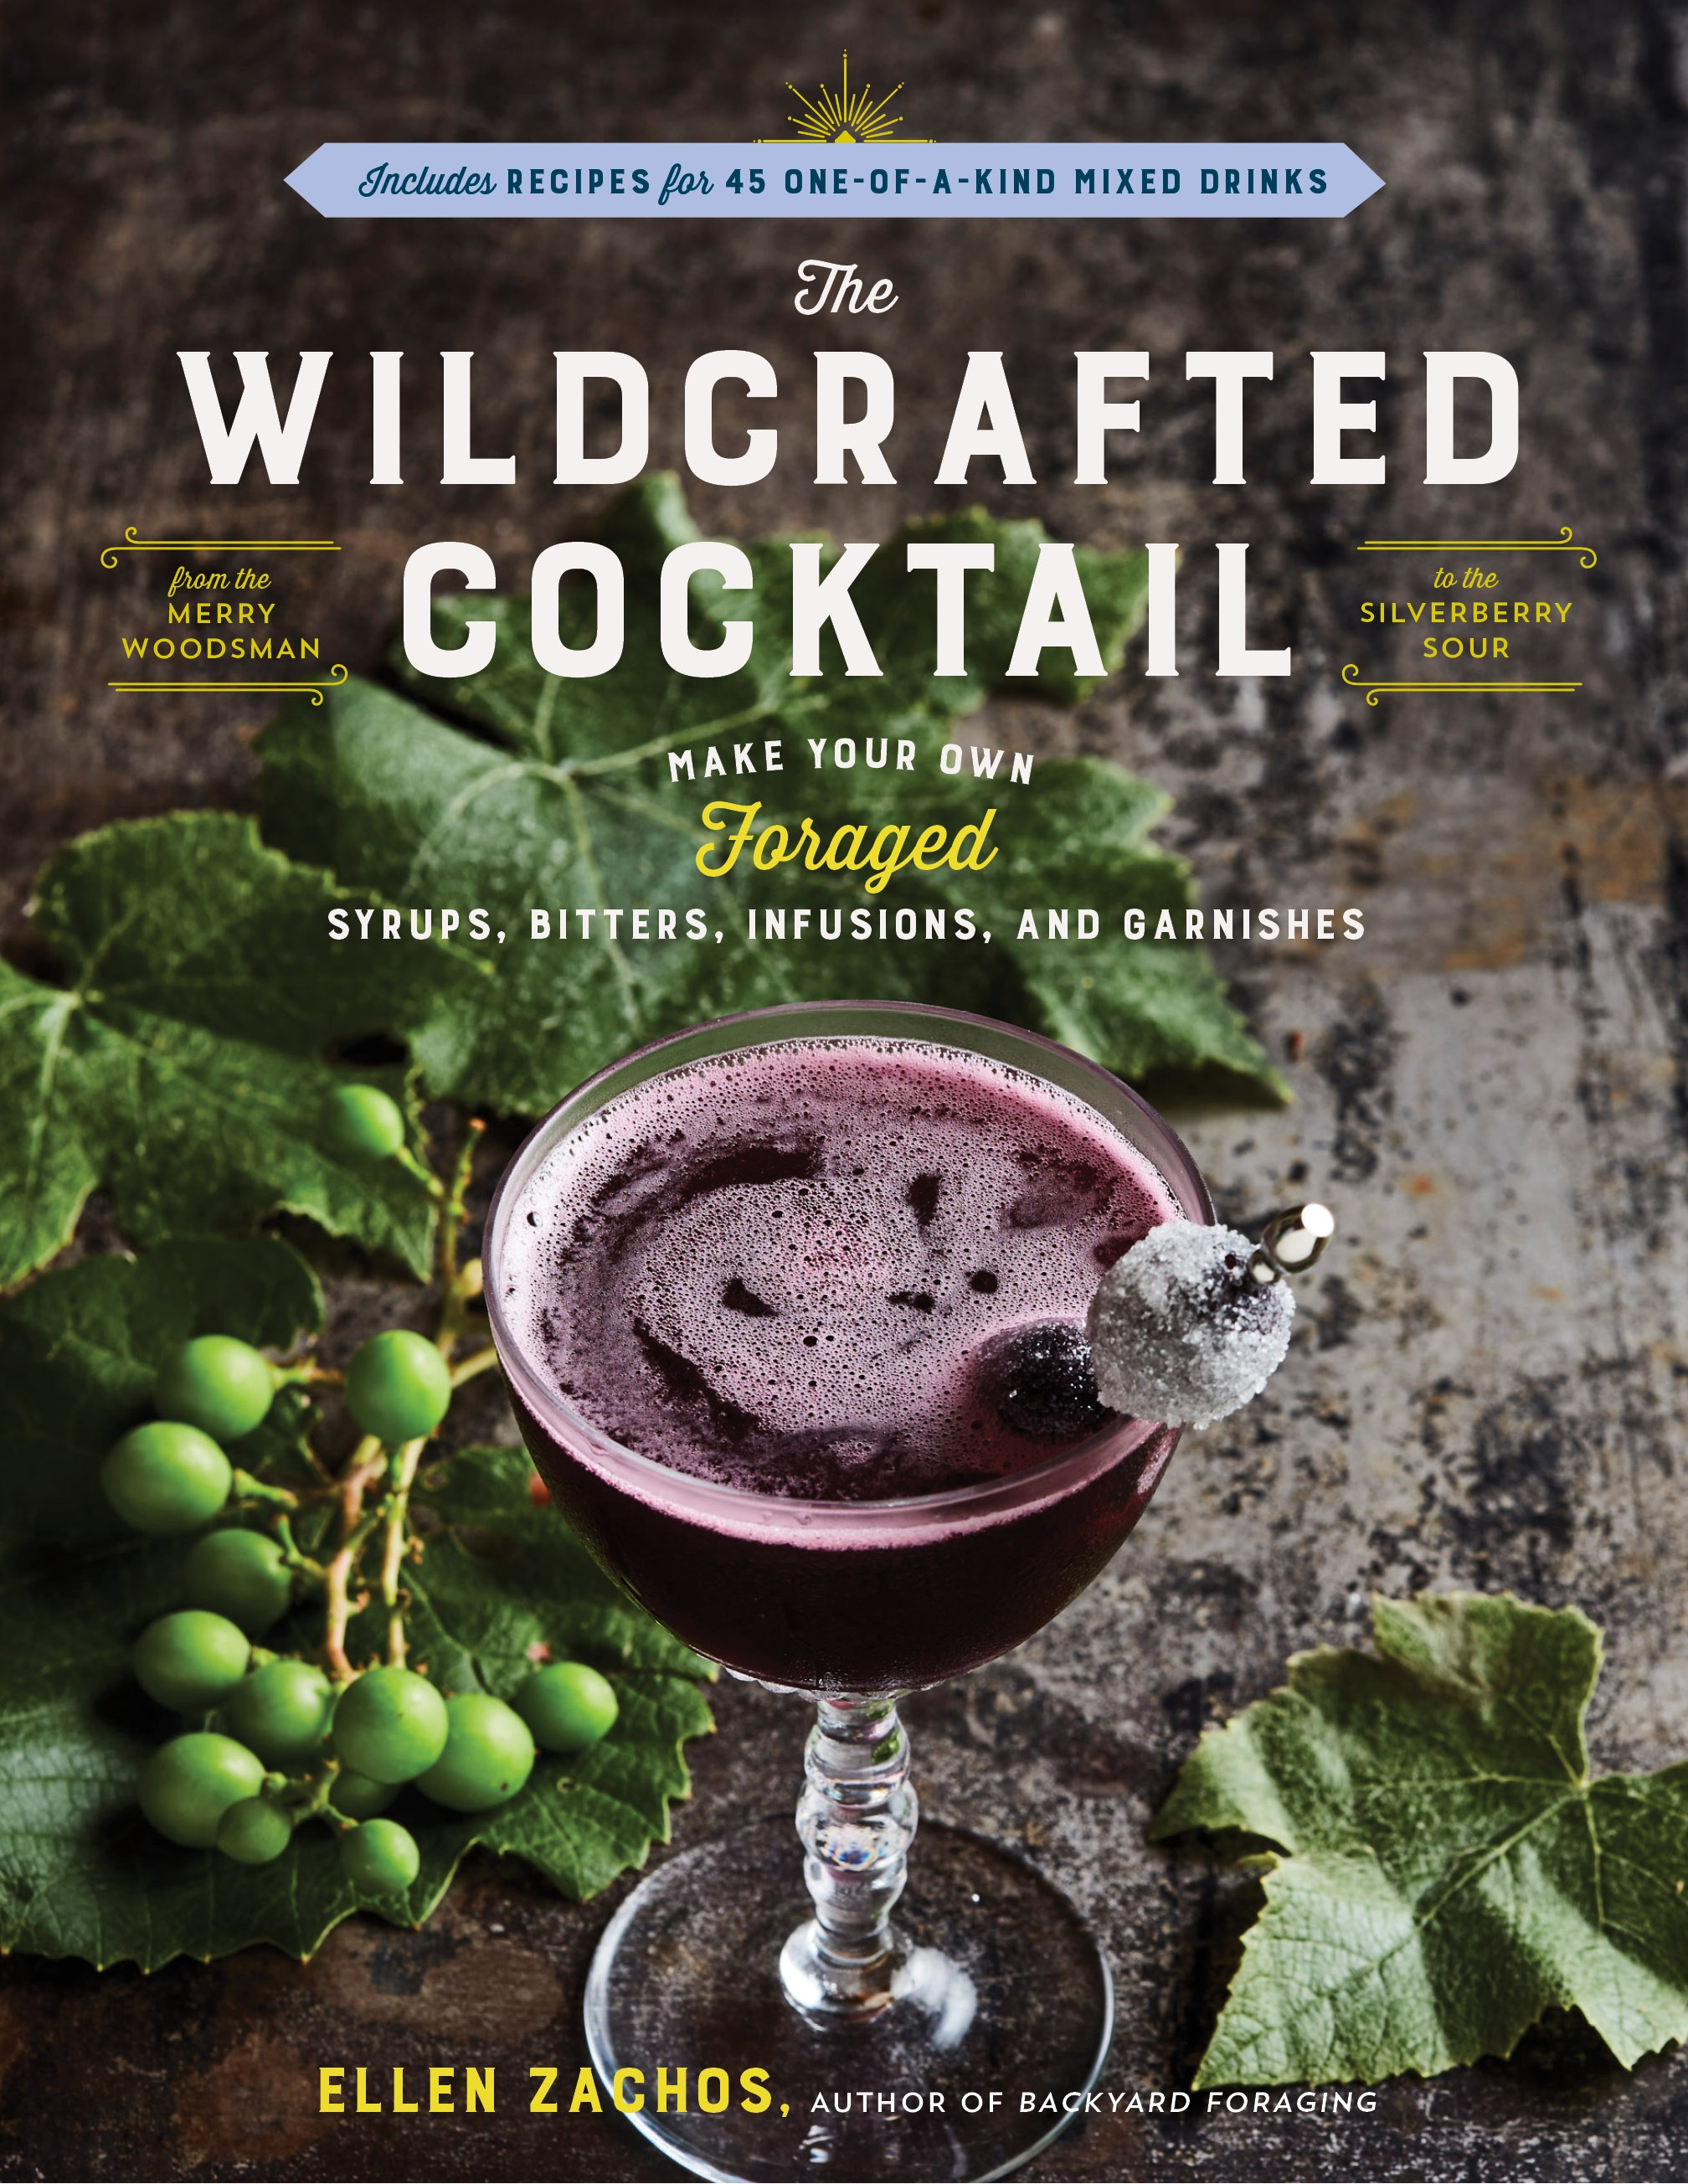 Say Happy New Year with a Wildcrafted Cocktail